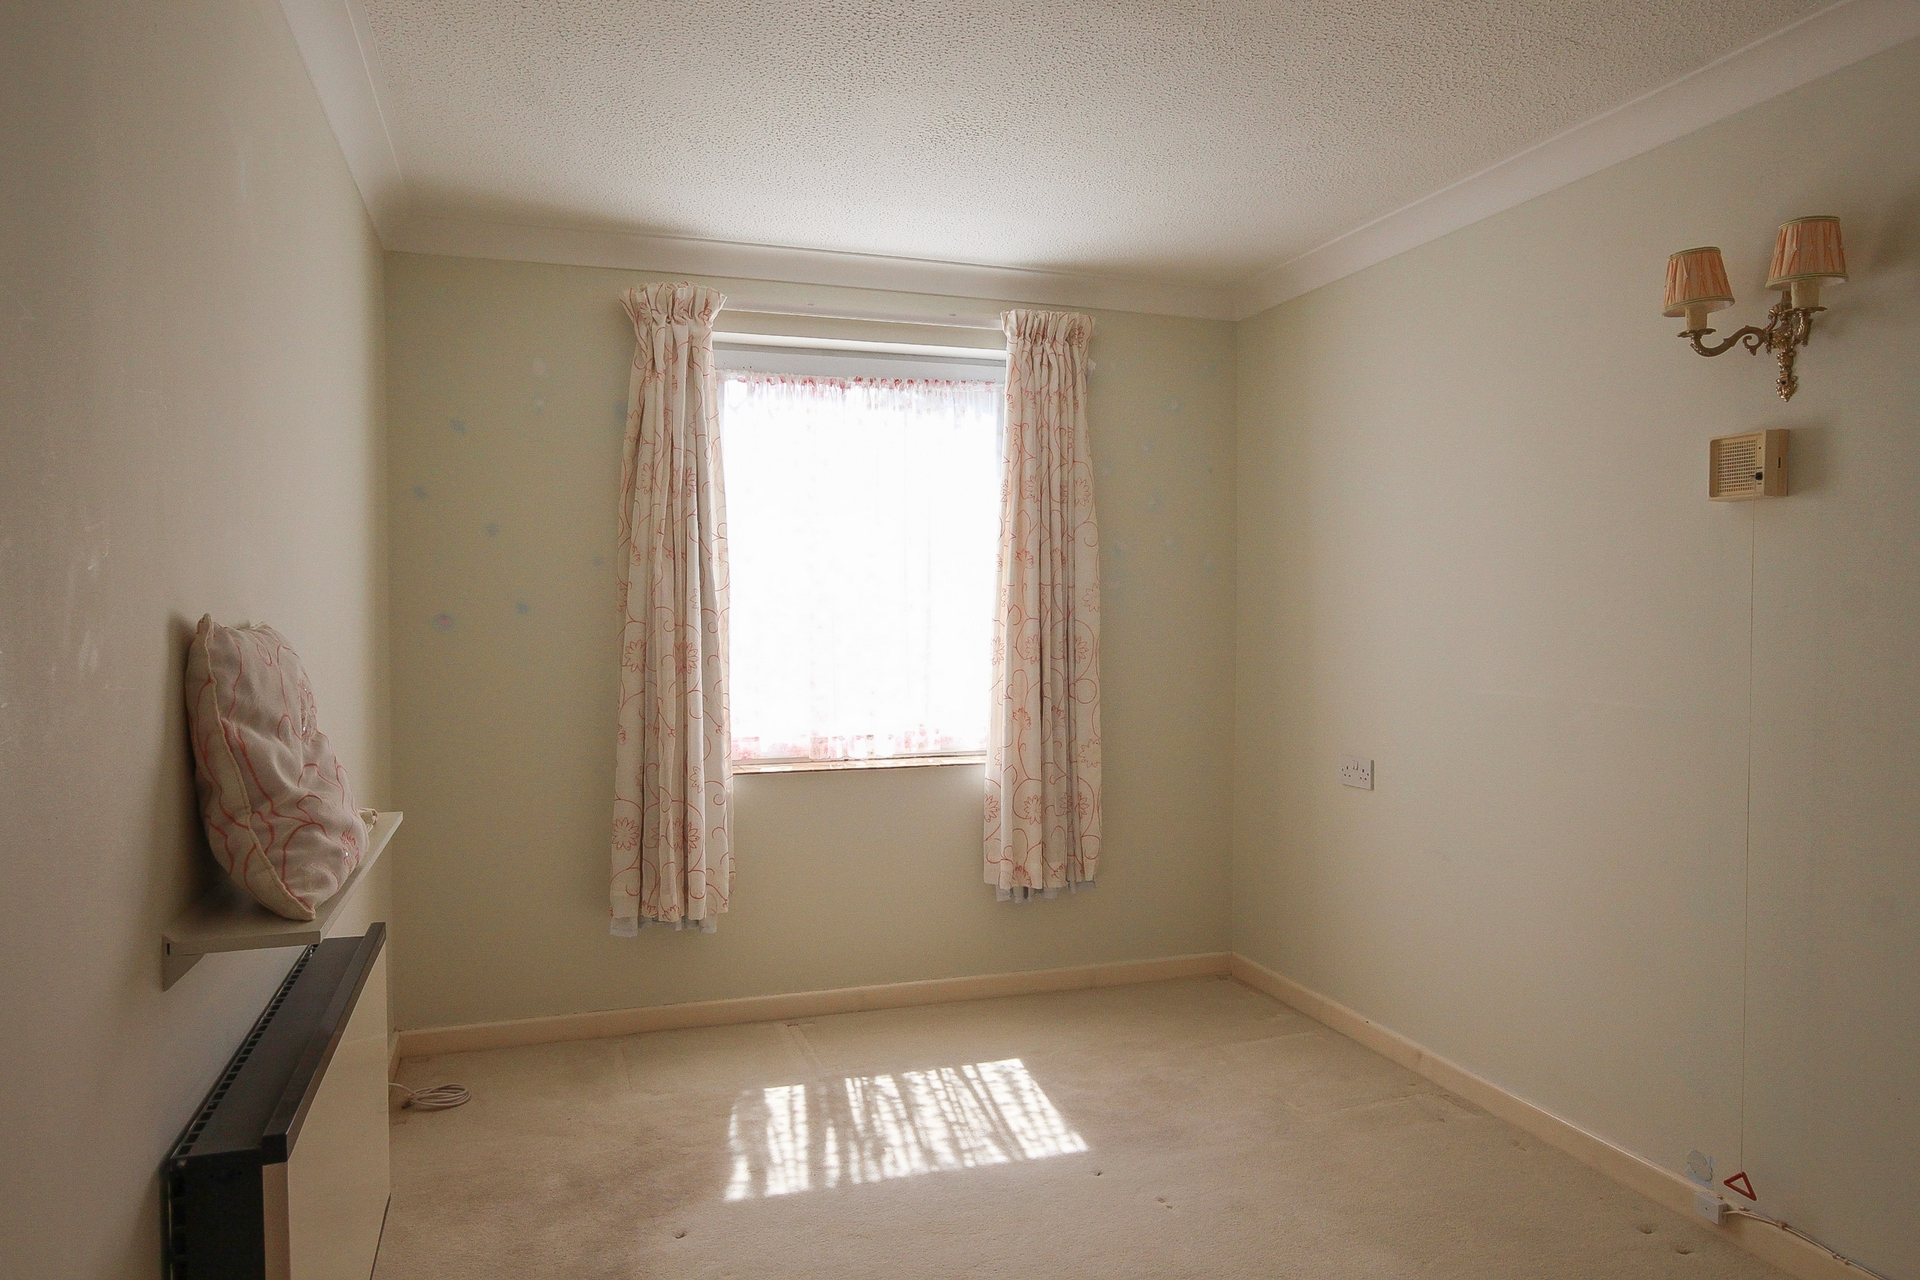 1 bed flat to rent in Hunting Gate, Birchington, CT7 4